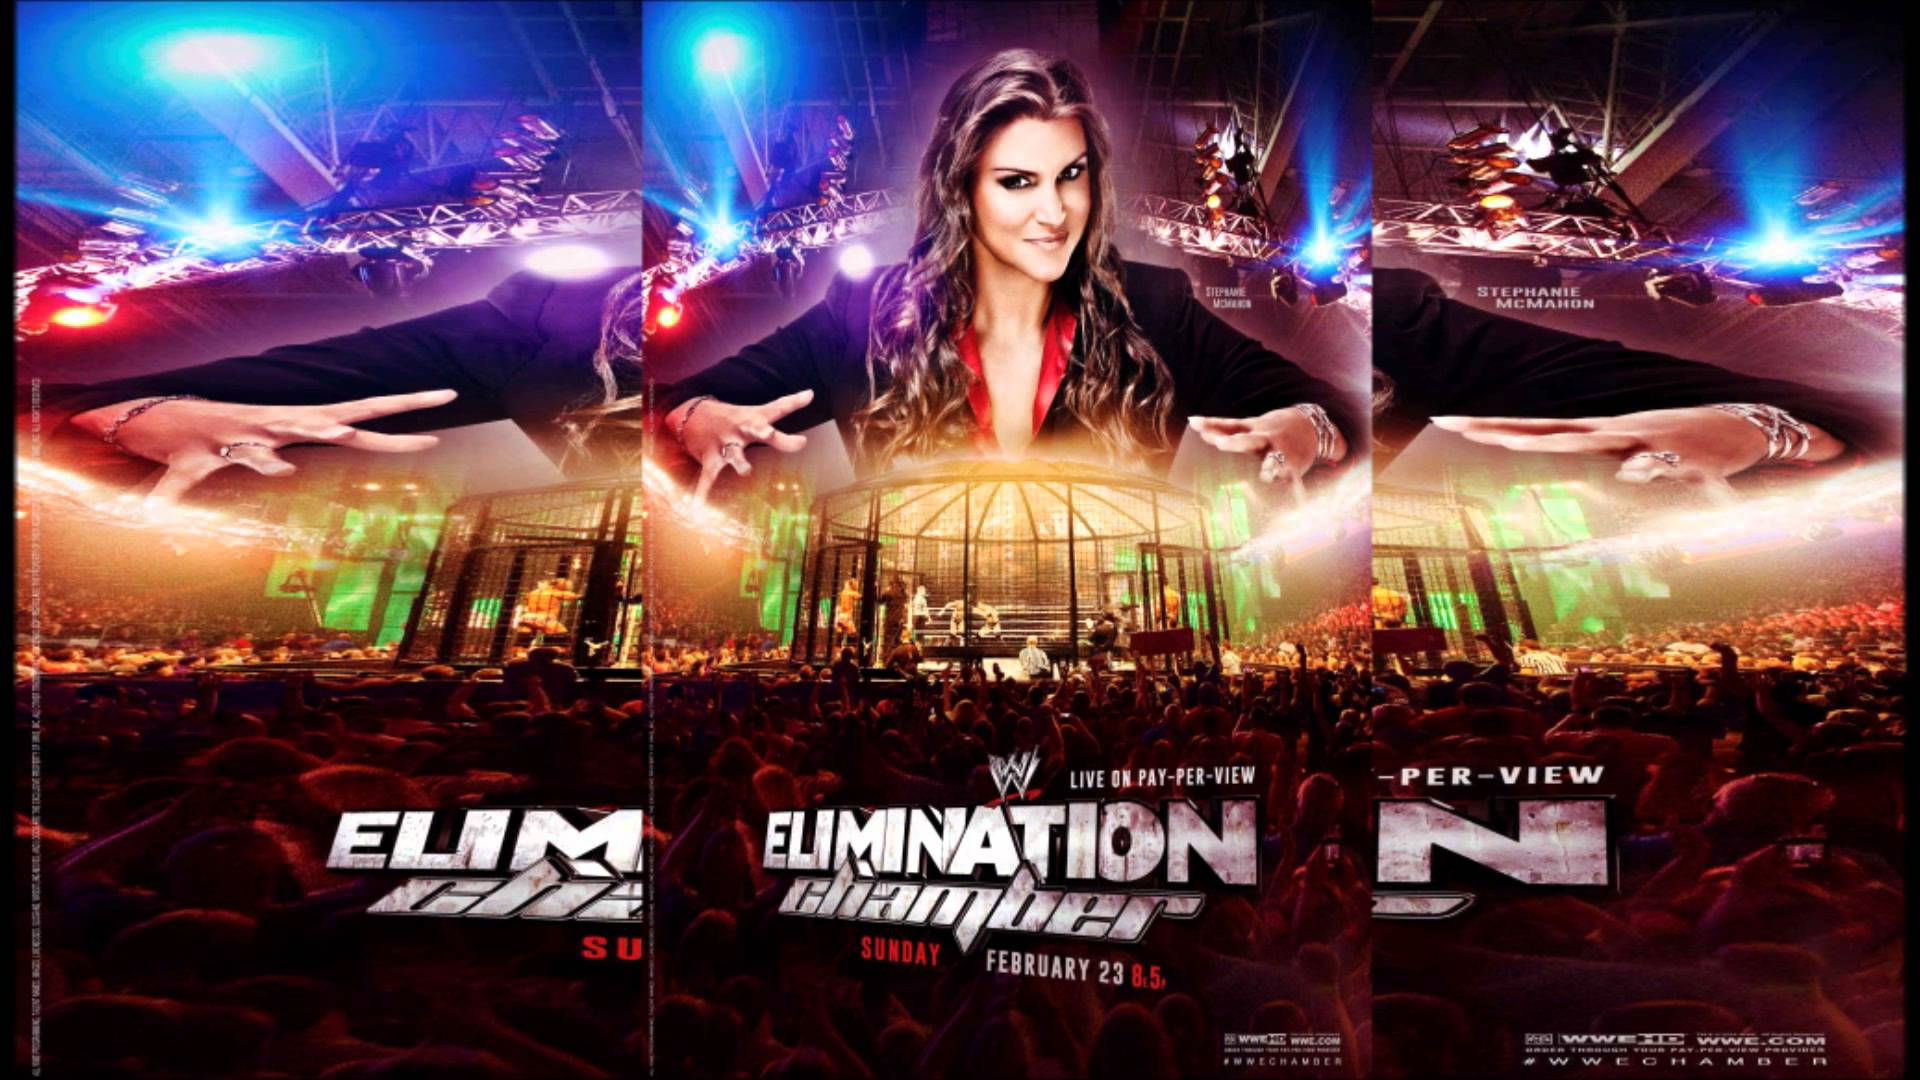 WWE Elimination Chamber 2014 Official Poster 1920x1080